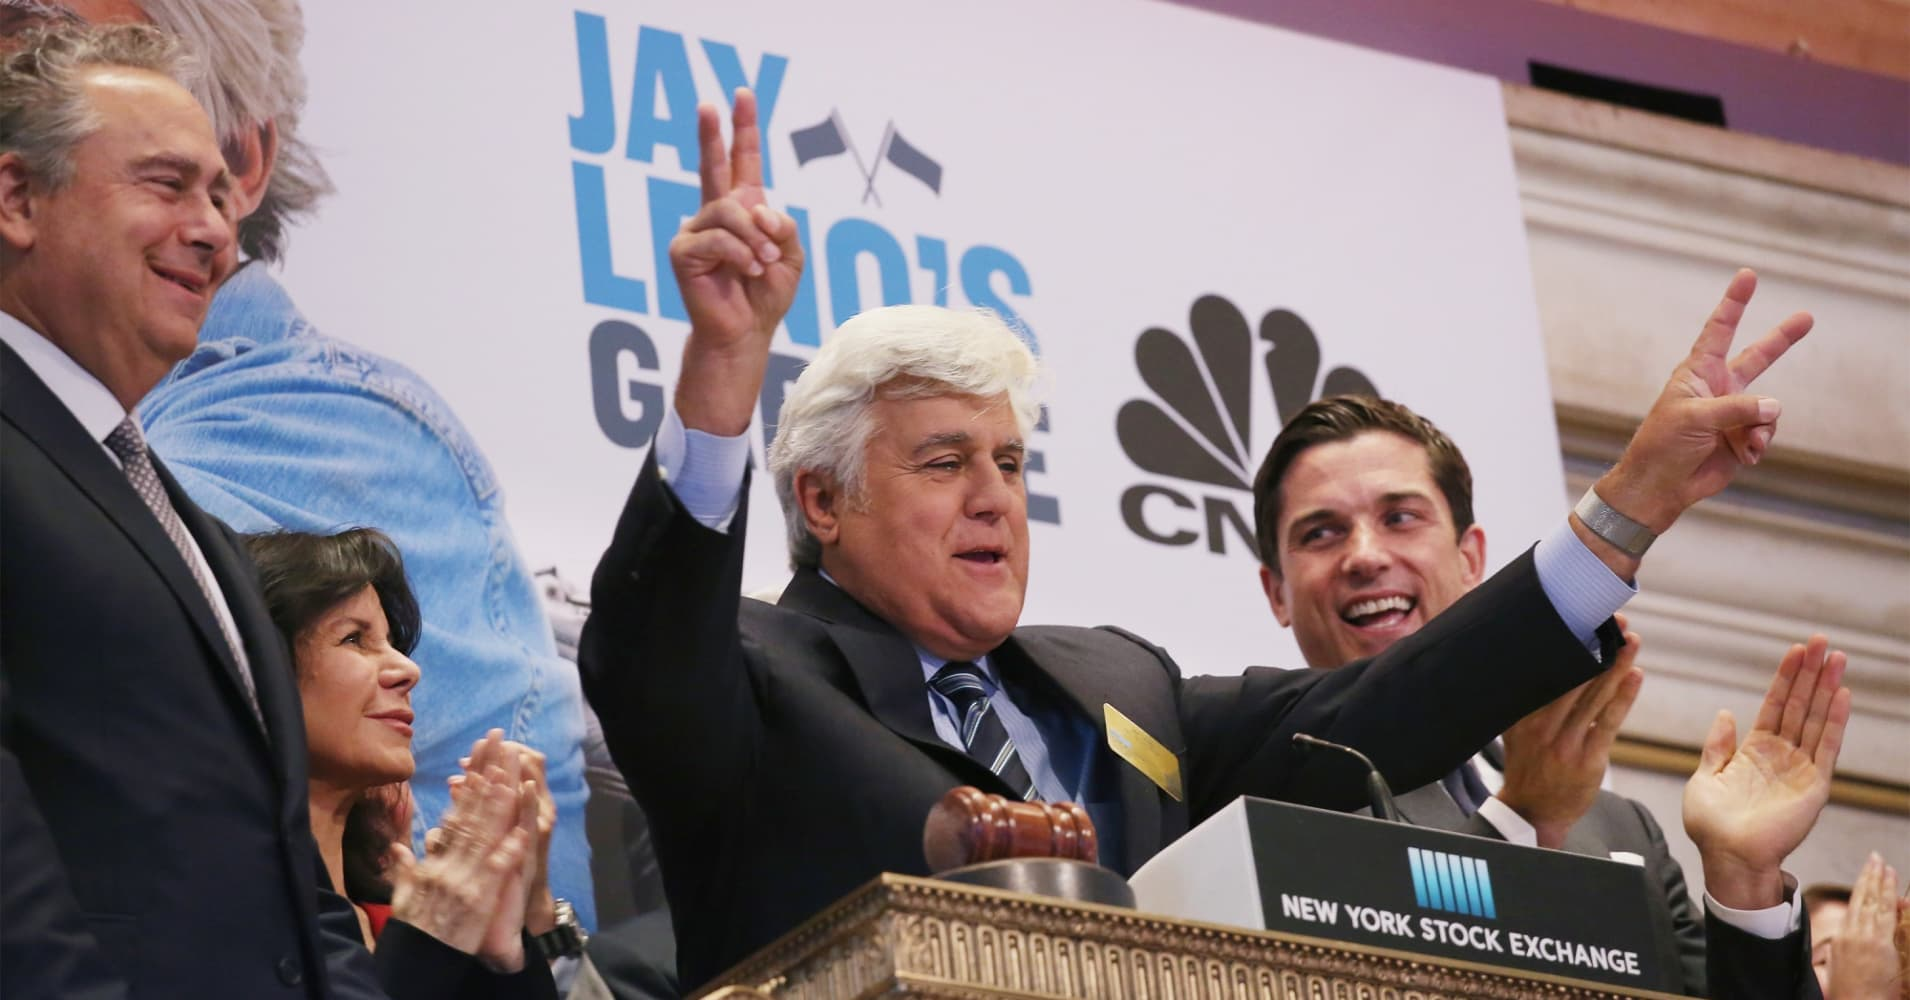 Jay Leno and President of NYSE Group at Intercontinental Exchange, Inc.